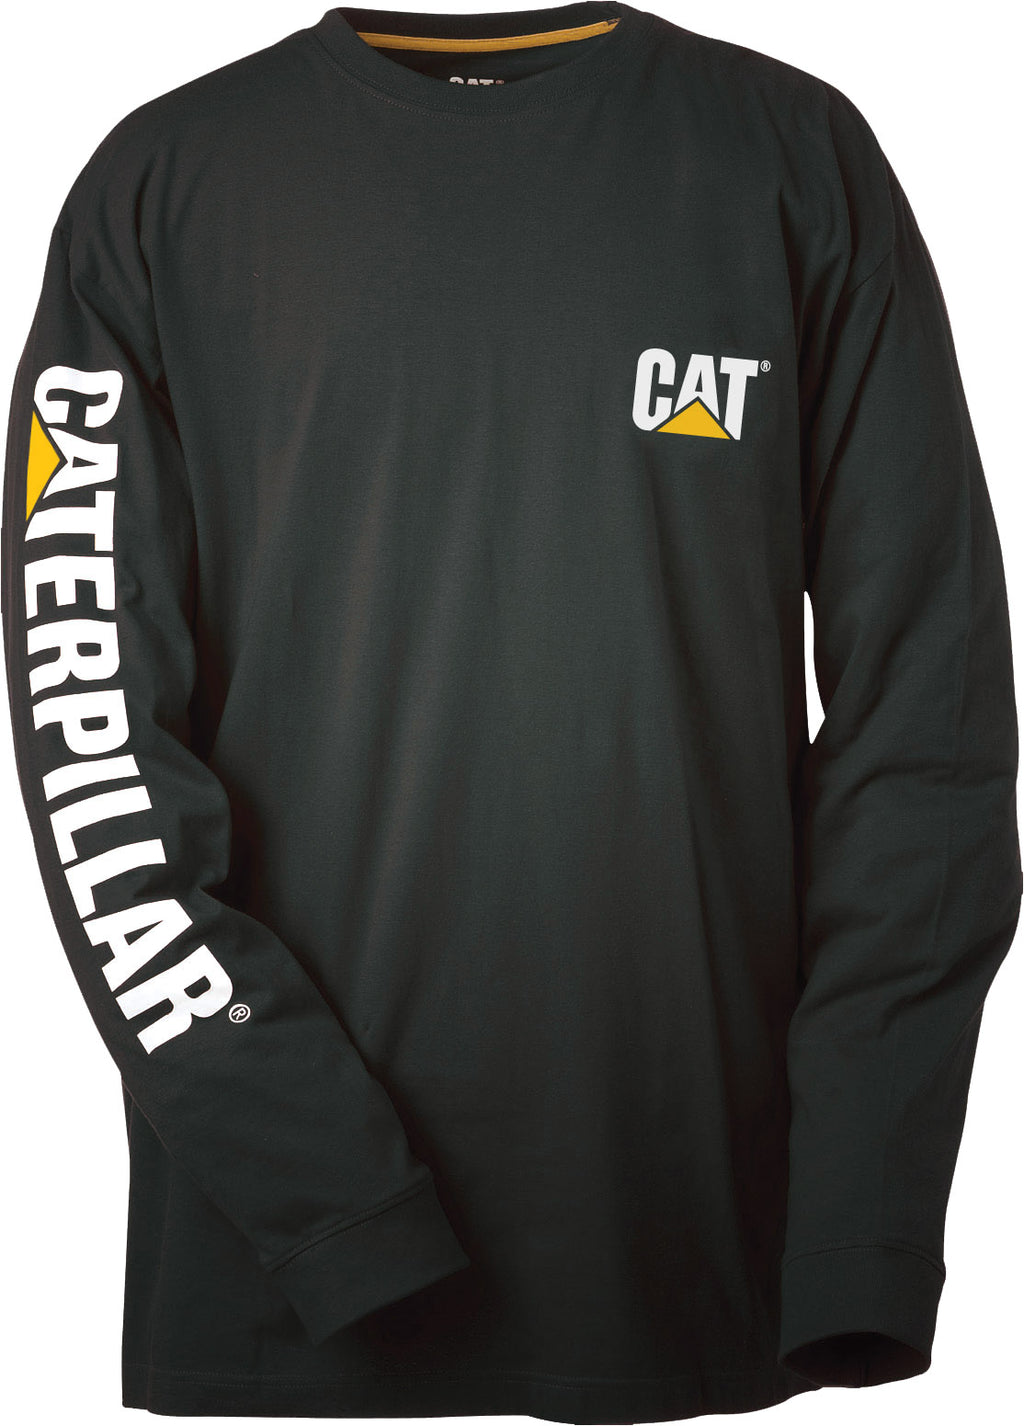 T-Shirt Cat Long Sleeve Trademark Banner Black Lge